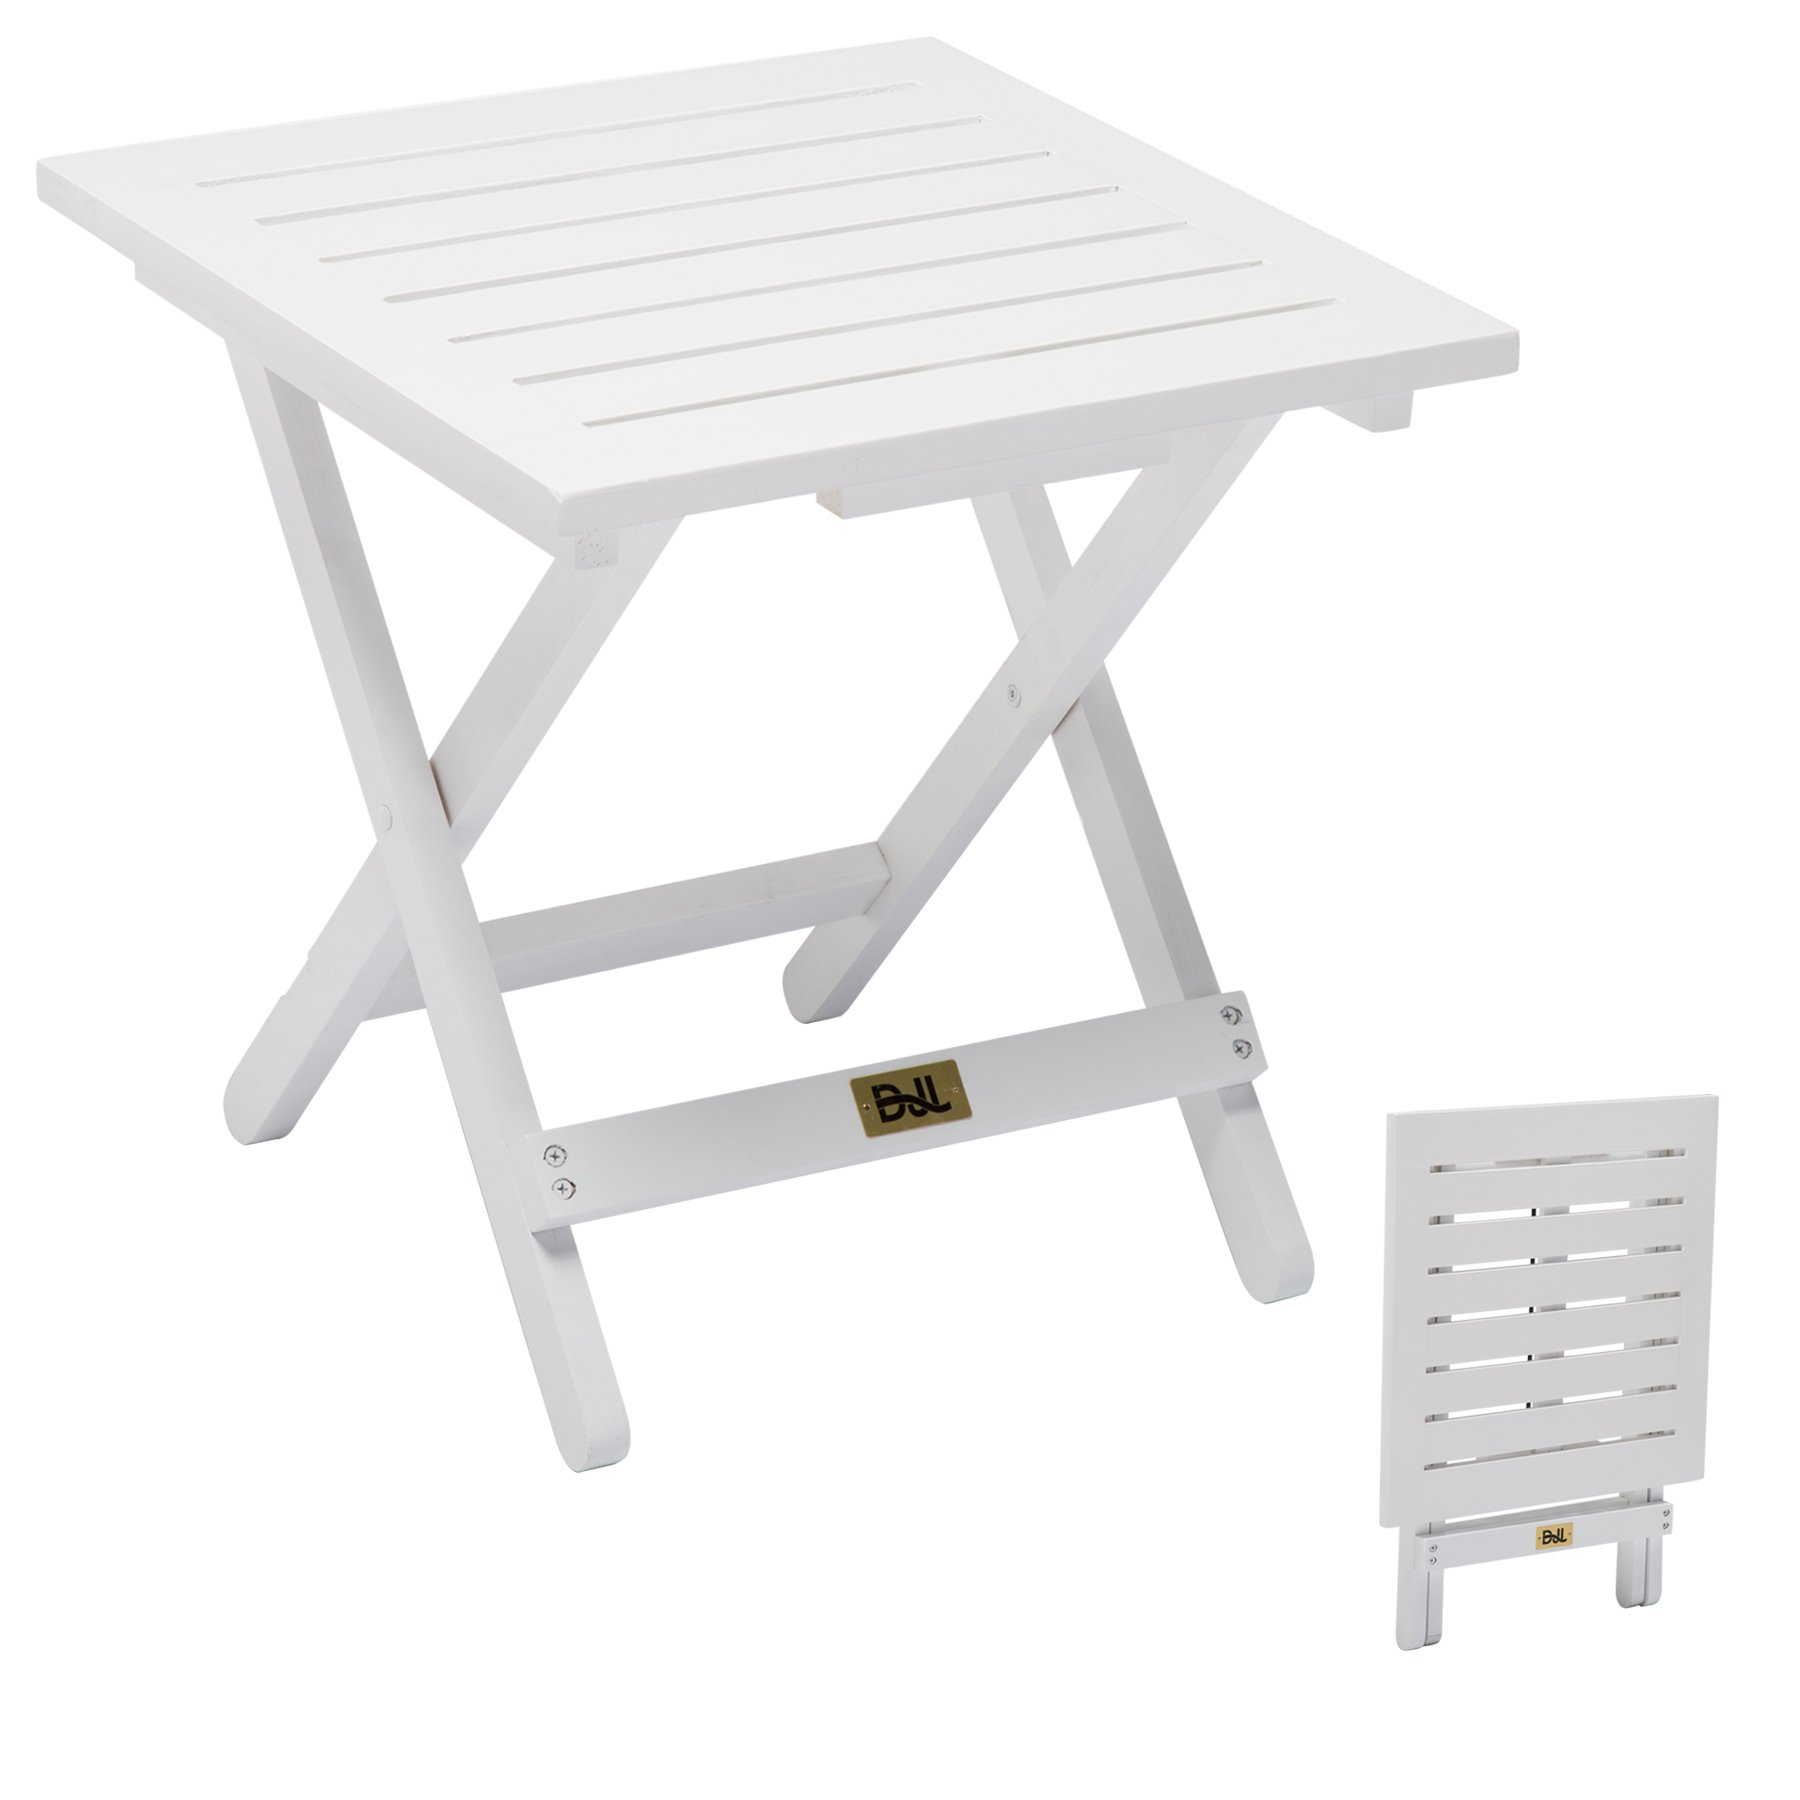 Wood Folding Patio Side Table for Adirondack Chairs Outdoor Small End Table Portable Little Table for Porch, Yard, Garden